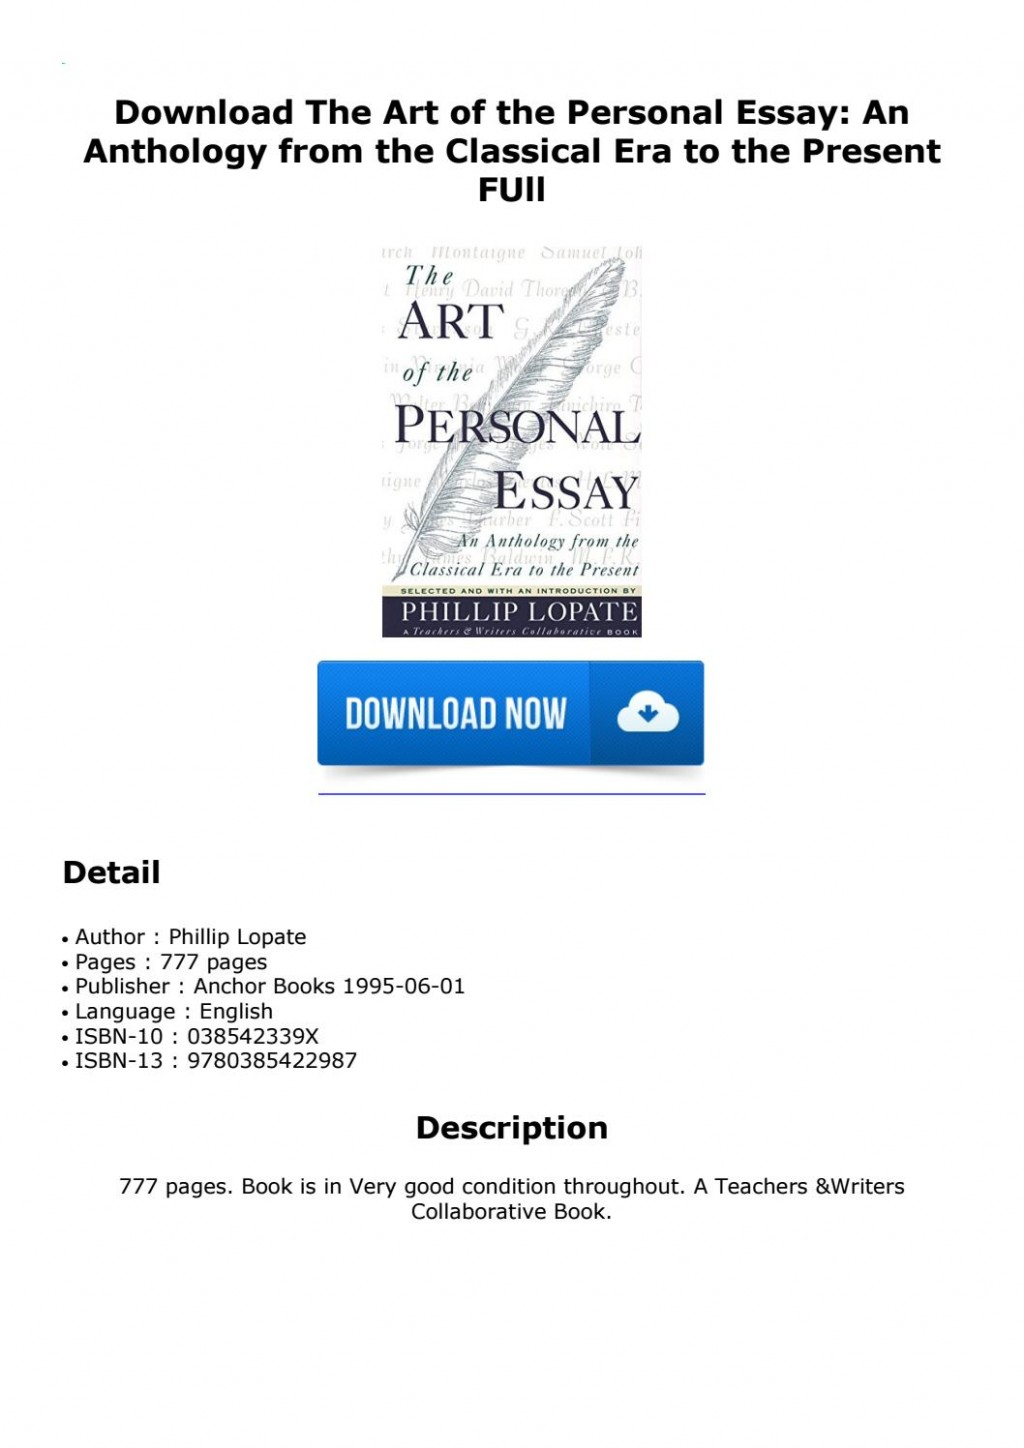 002 Page 1 The Art Of Personal Essay Beautiful Pdf Download Table Contents Large